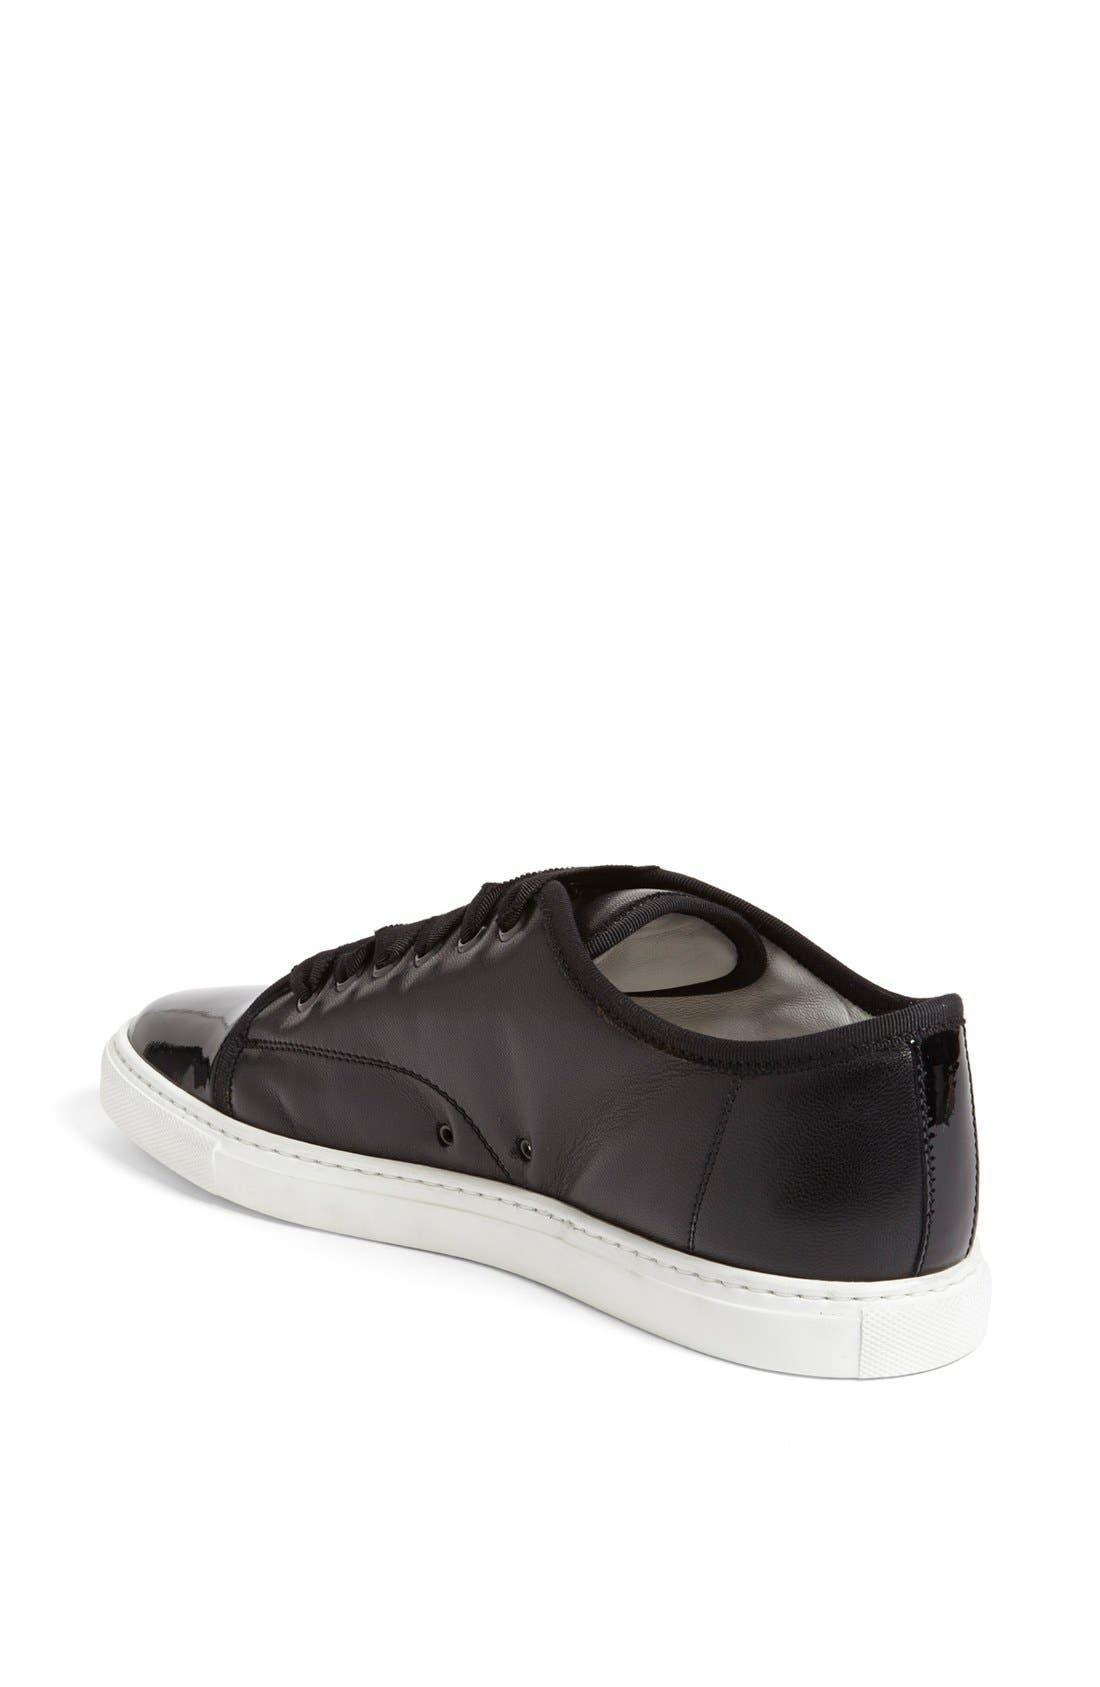 Alternate Image 2  - Lanvin Leather Low Top Sneaker